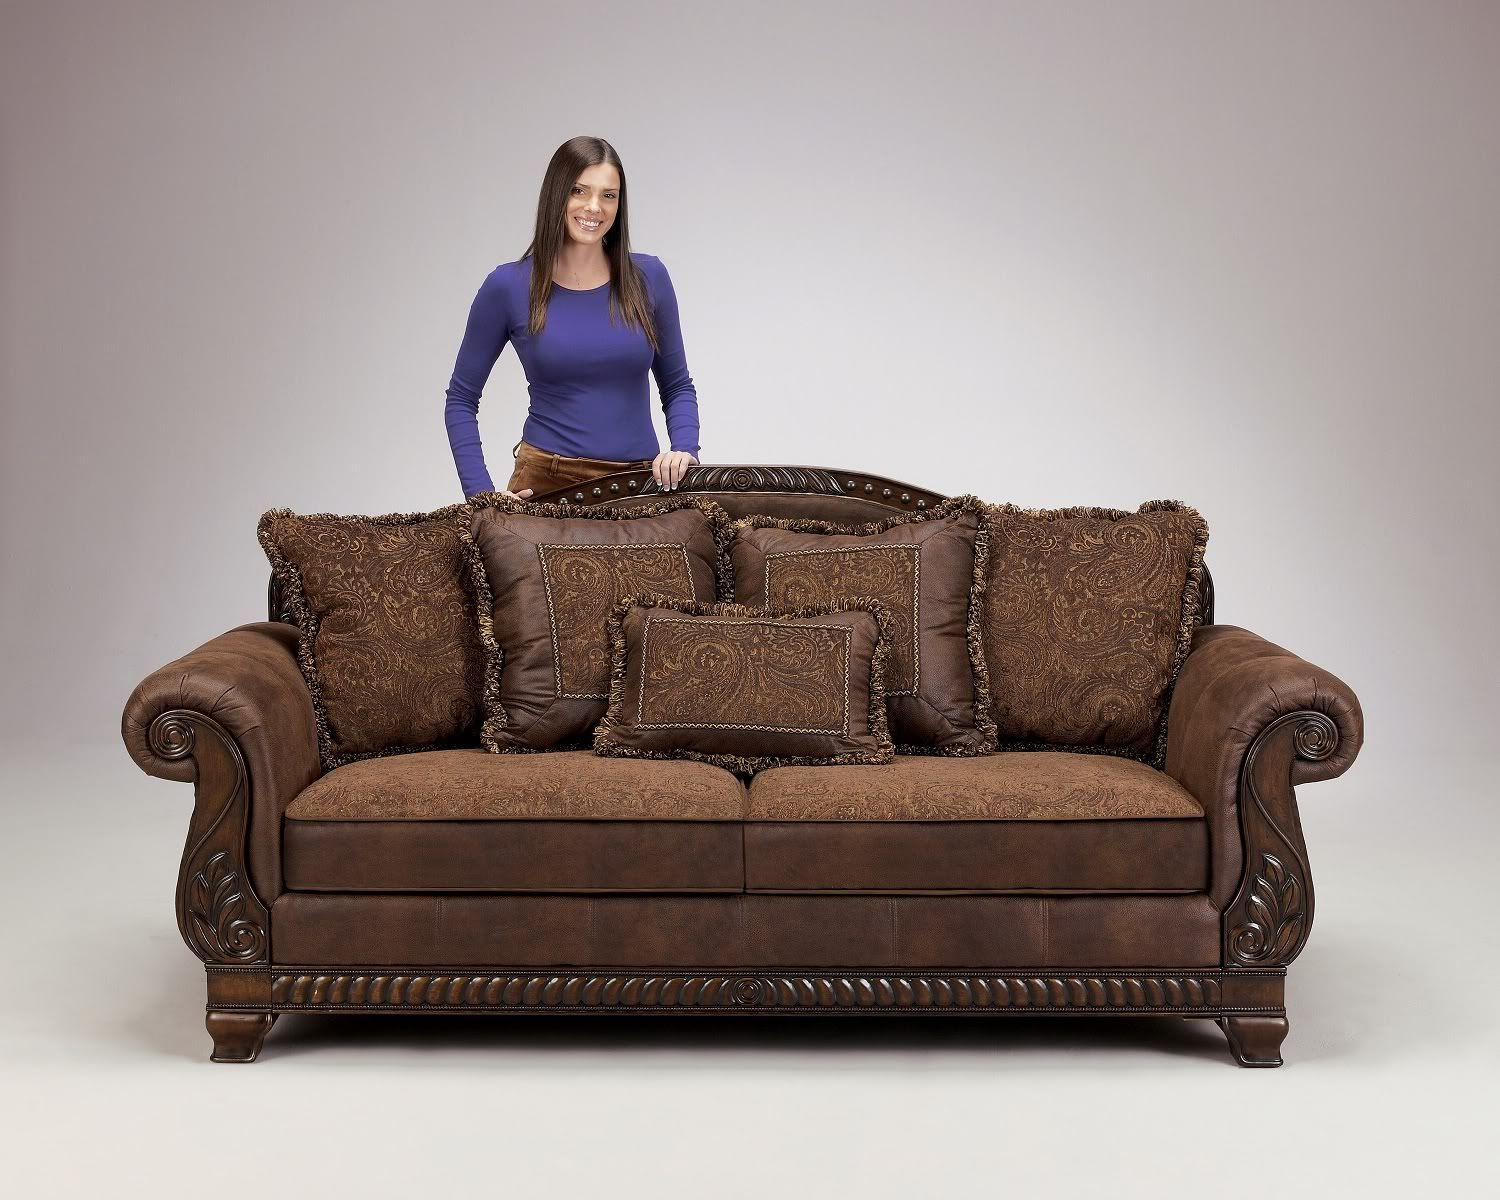 truffle traditional sofa set old world couch wood trim cozy fabric - Best Sofas In The World